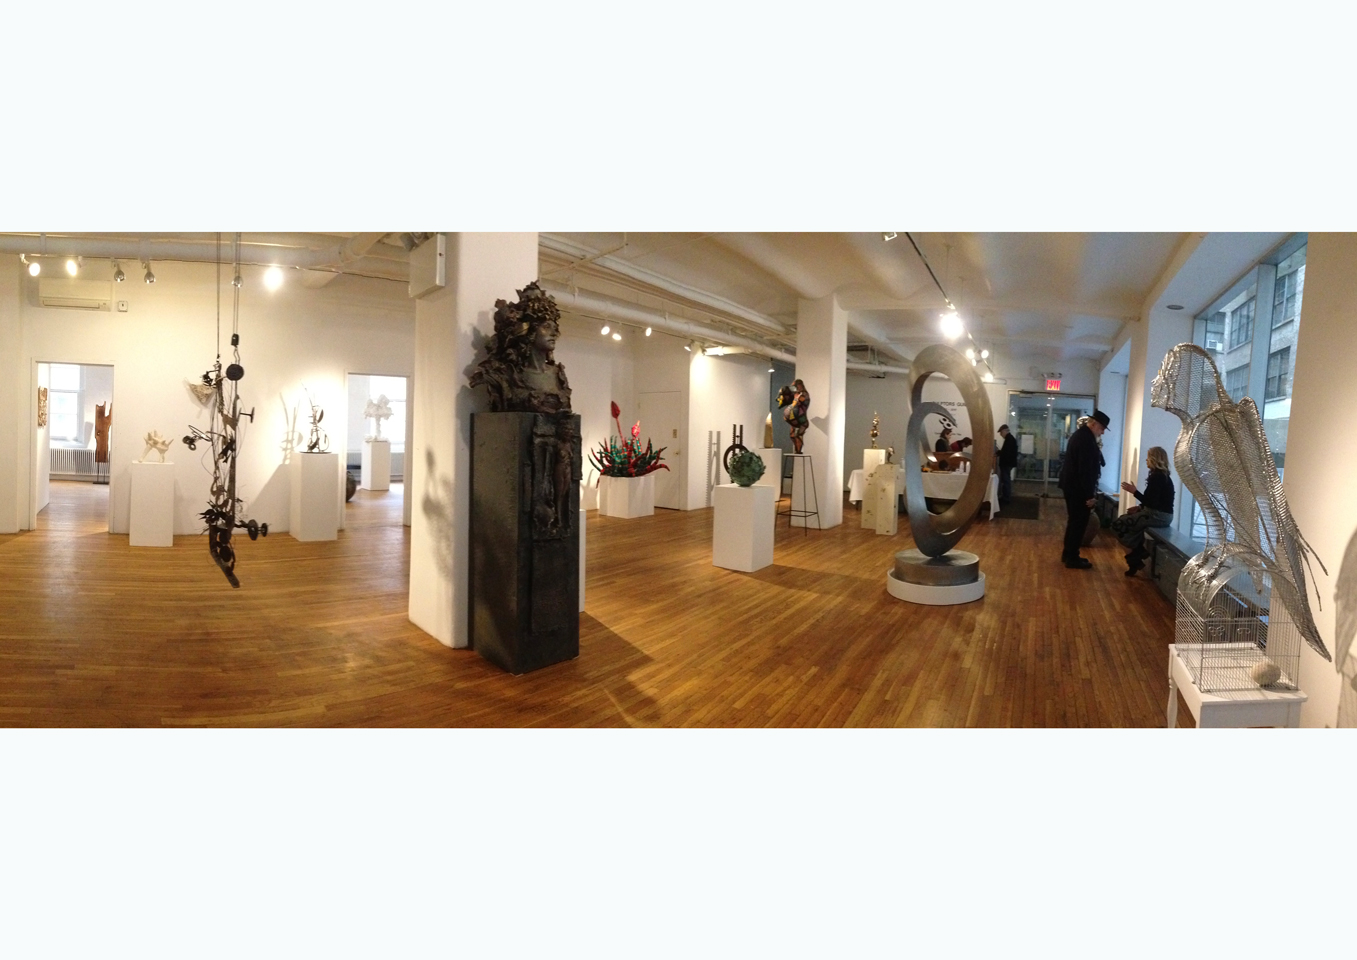 Caroline_Bergonzi_Currently-80_Sculptors-Guild_Sculptor_fine-art_New-york_06.jpg